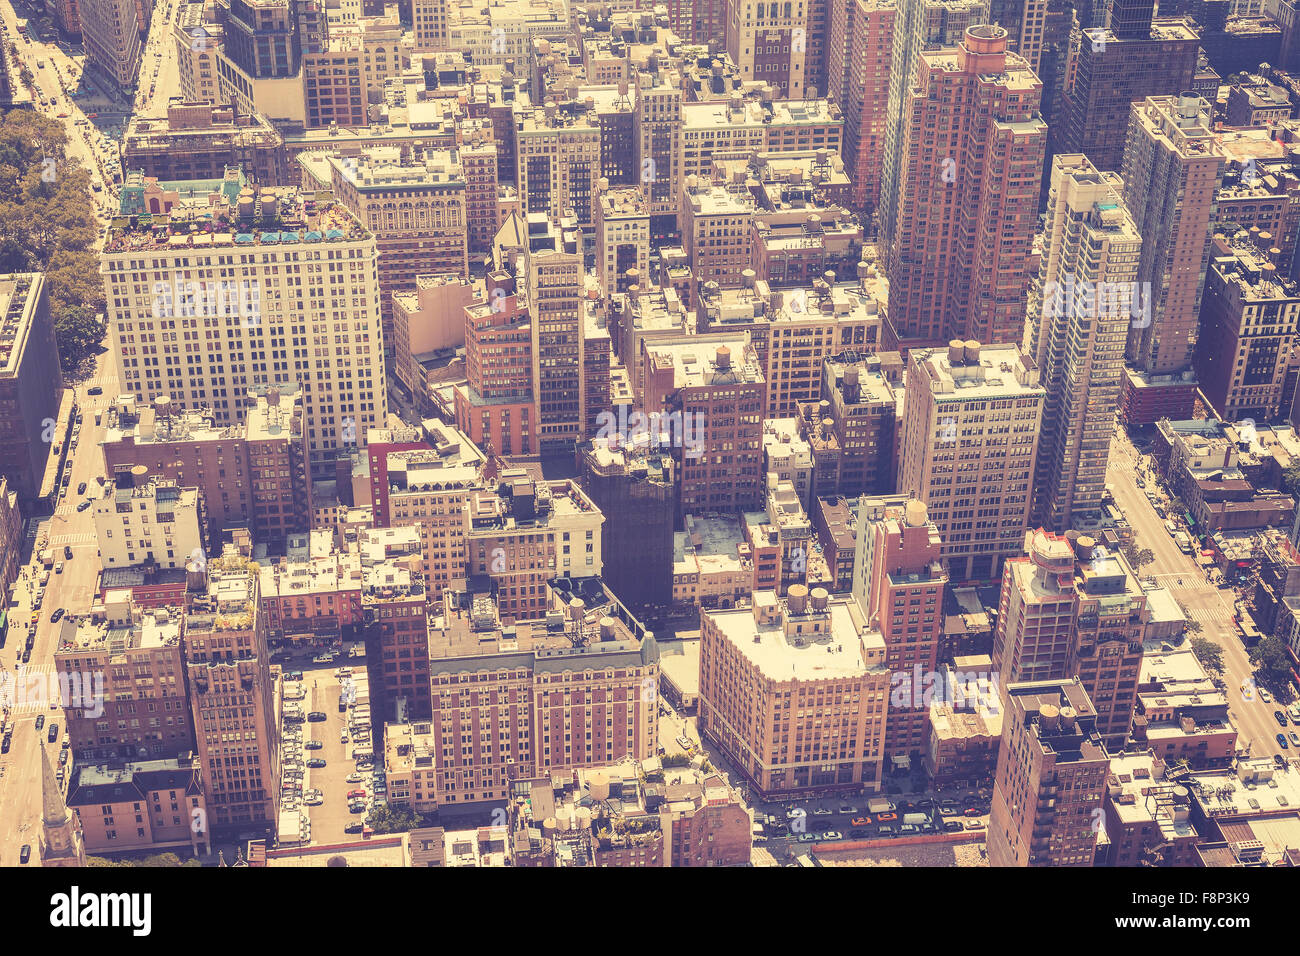 Vintage stylized aerial picture of Manhattan, New York, USA - Stock Image